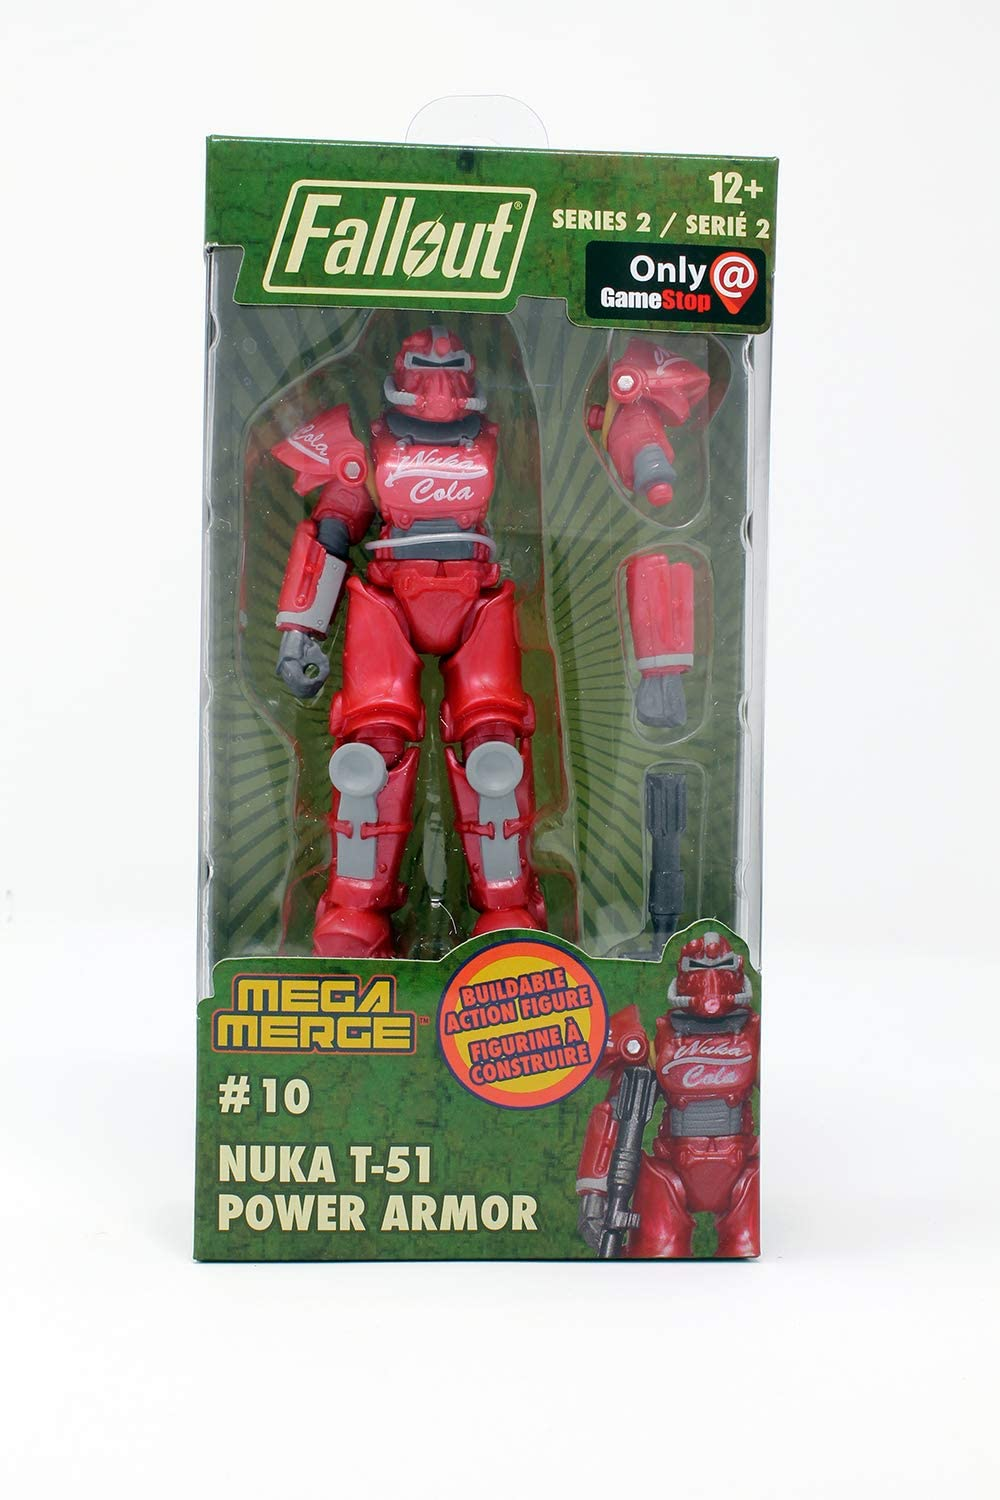 Fallout Mega Merge Series 2 - T-51 Nuka Cola Power Armor